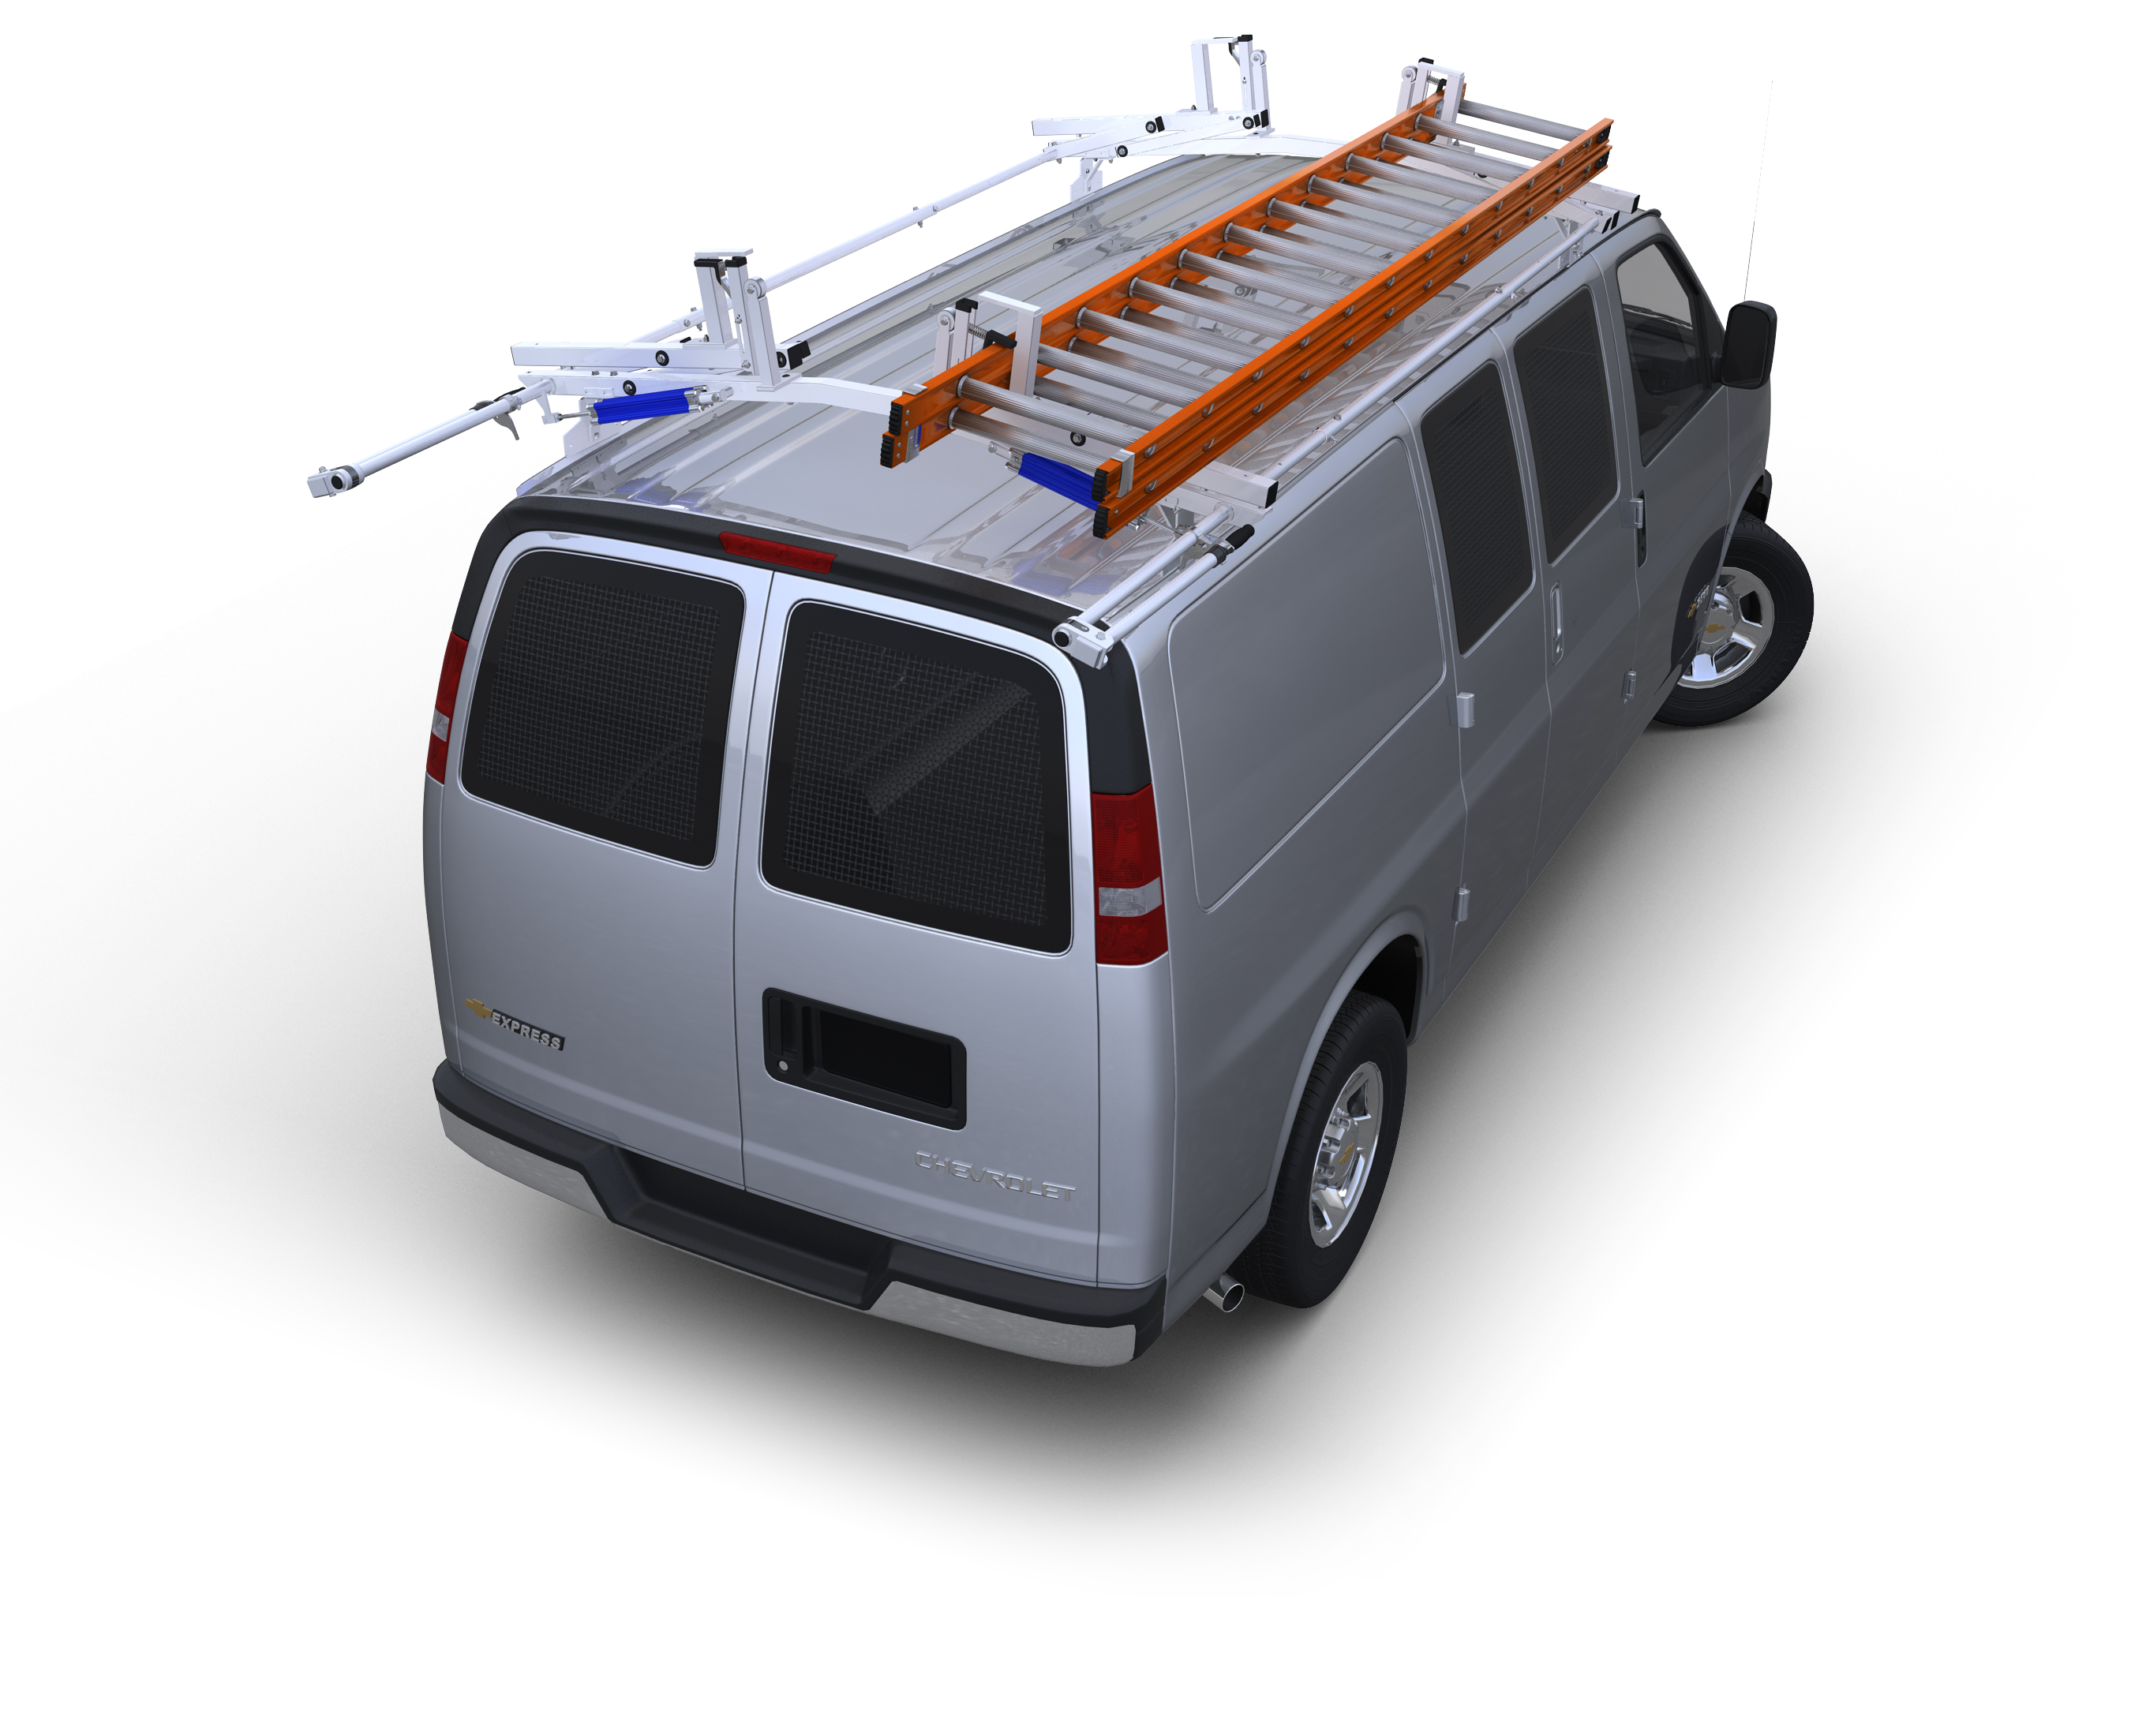 "2014 Transit Connect Contour Shelving with Back and Door, 28"" Wide"